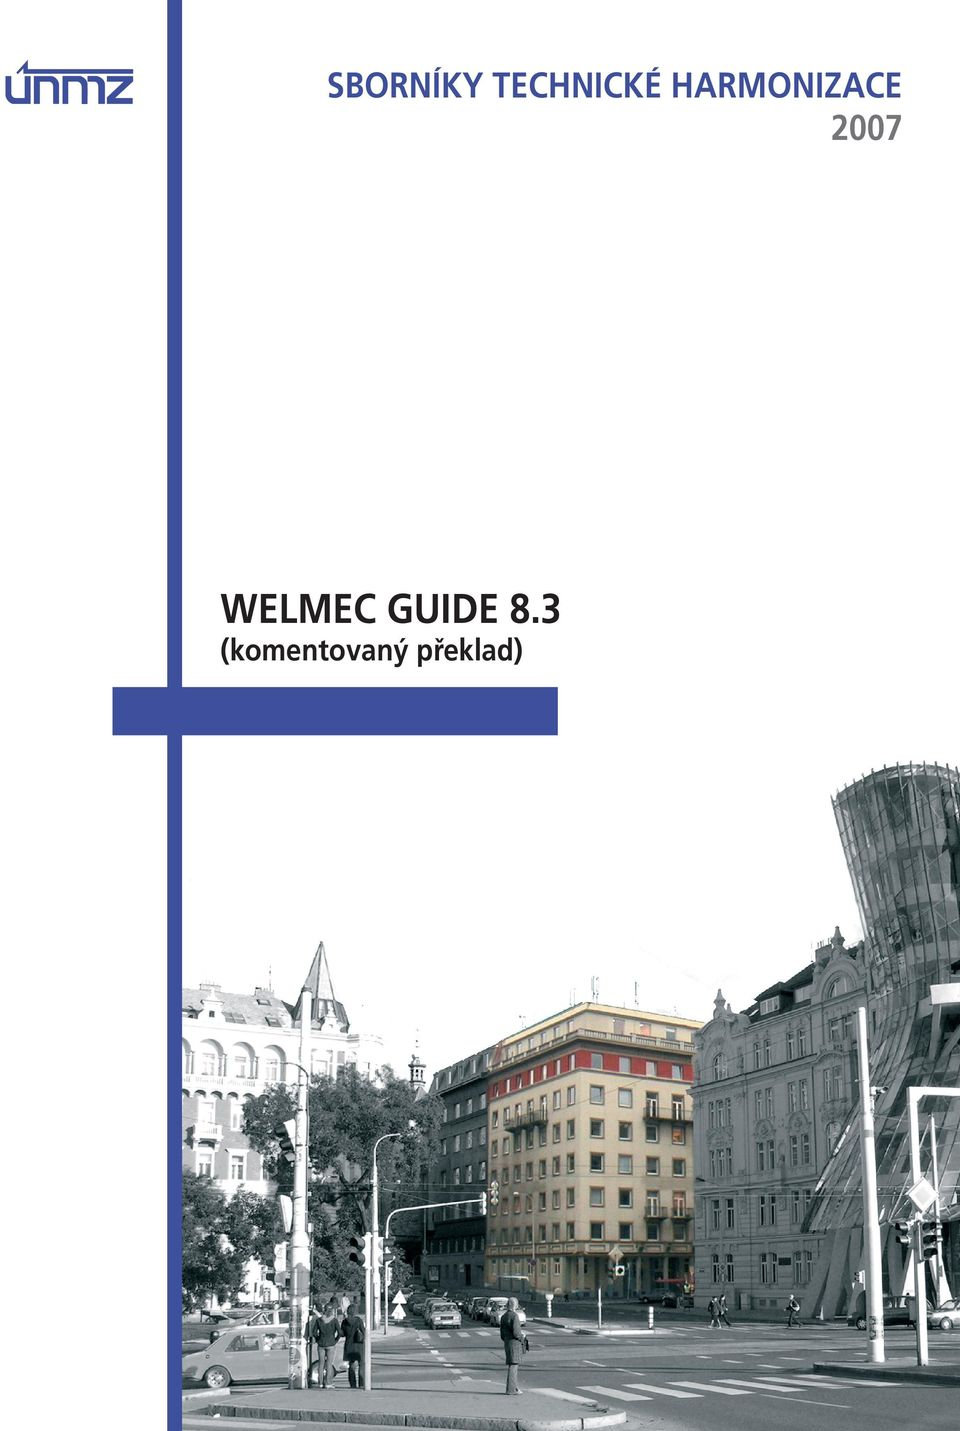 Welmec Guide 8.